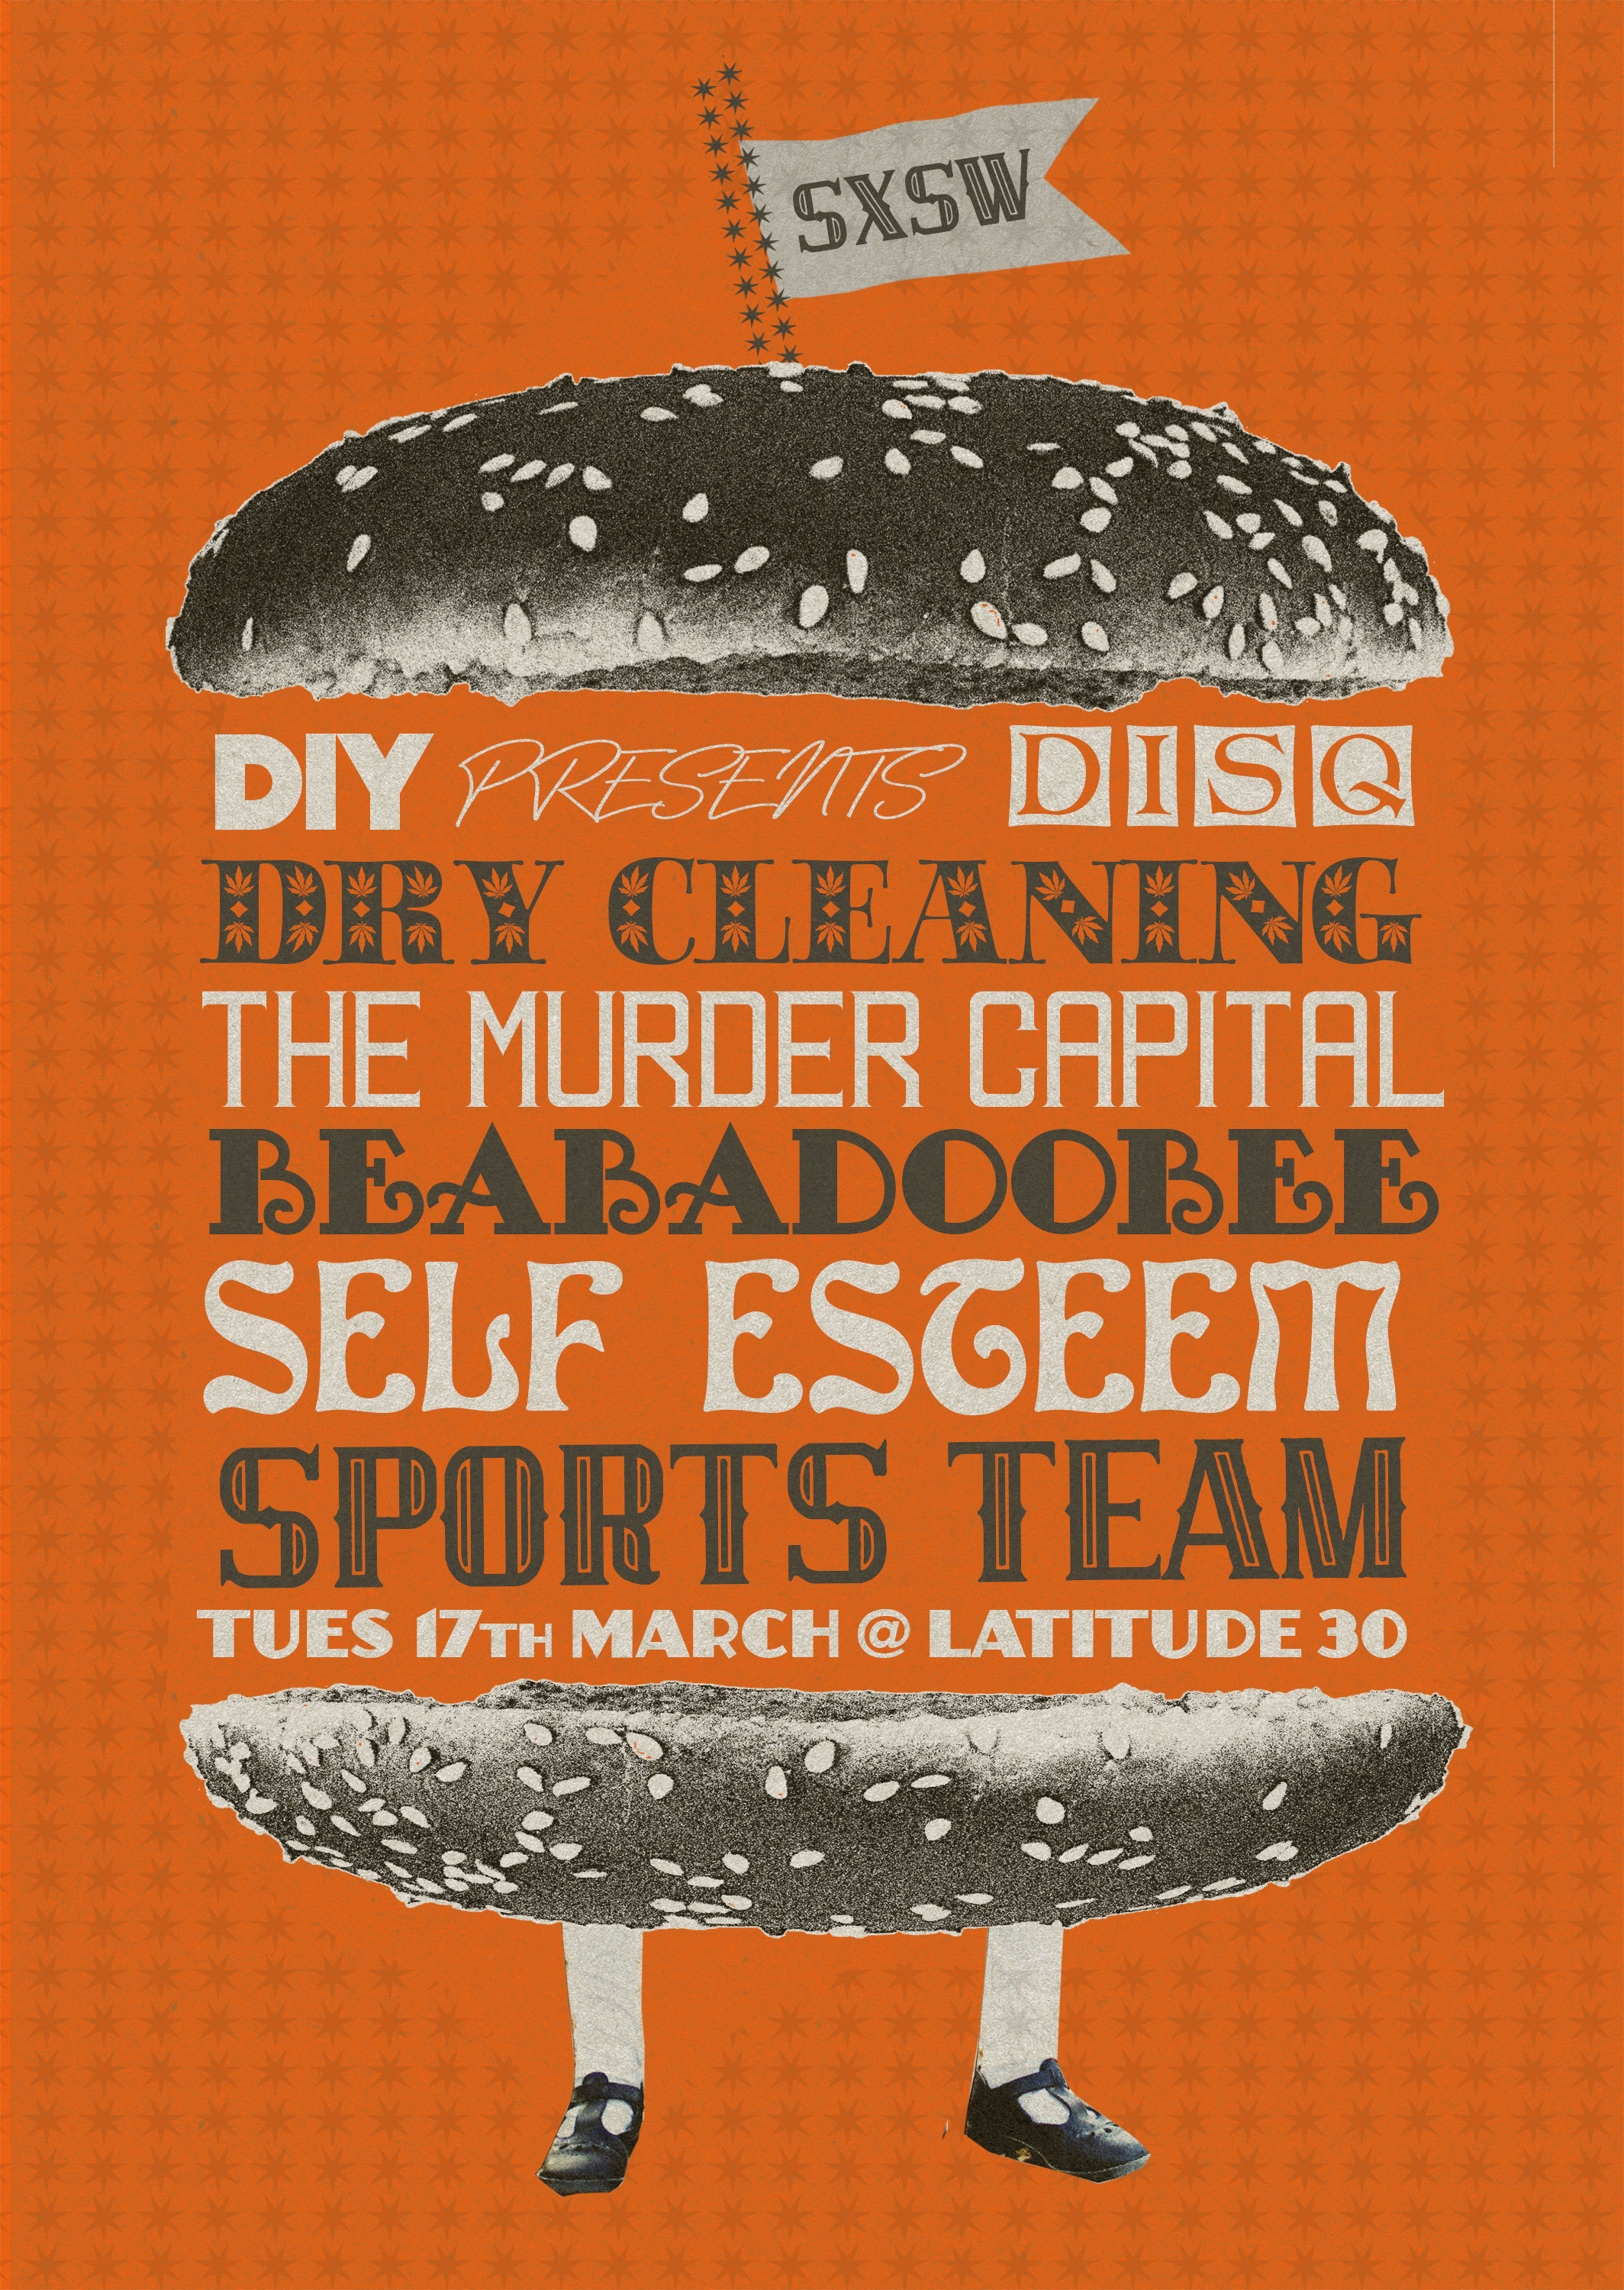 Beabadoobee, Dry Cleaning, Sports Team & Self Esteem to play DIY's final SXSW showcase